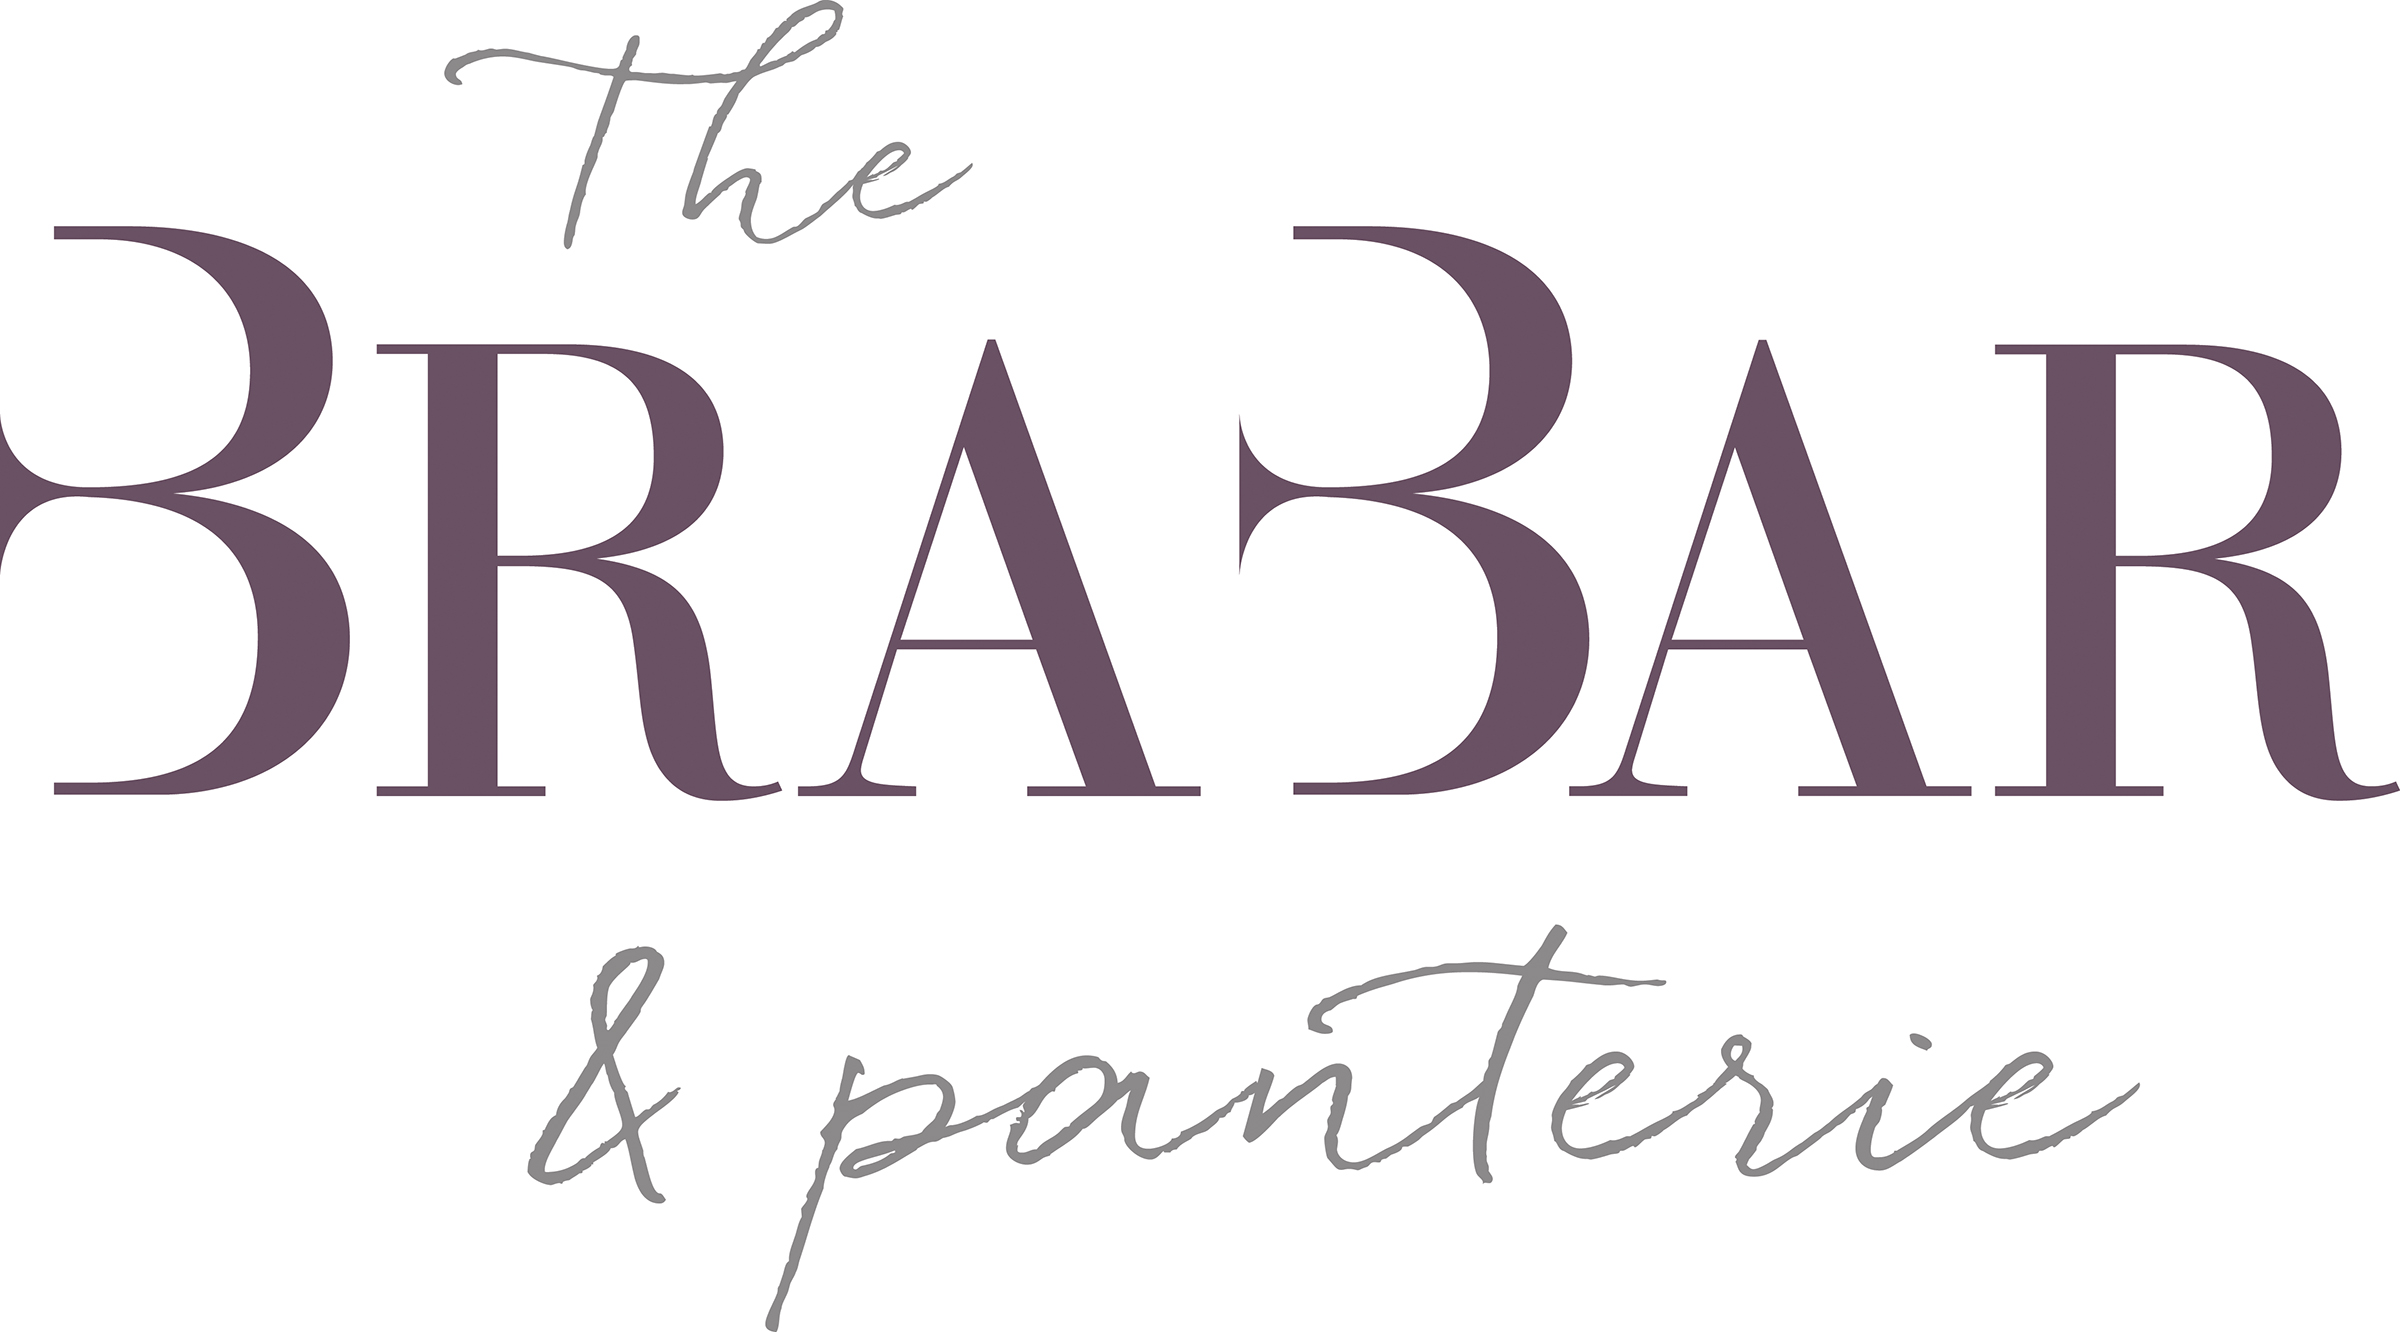 Bra_Bar_logo_COLOUR (1).jpg